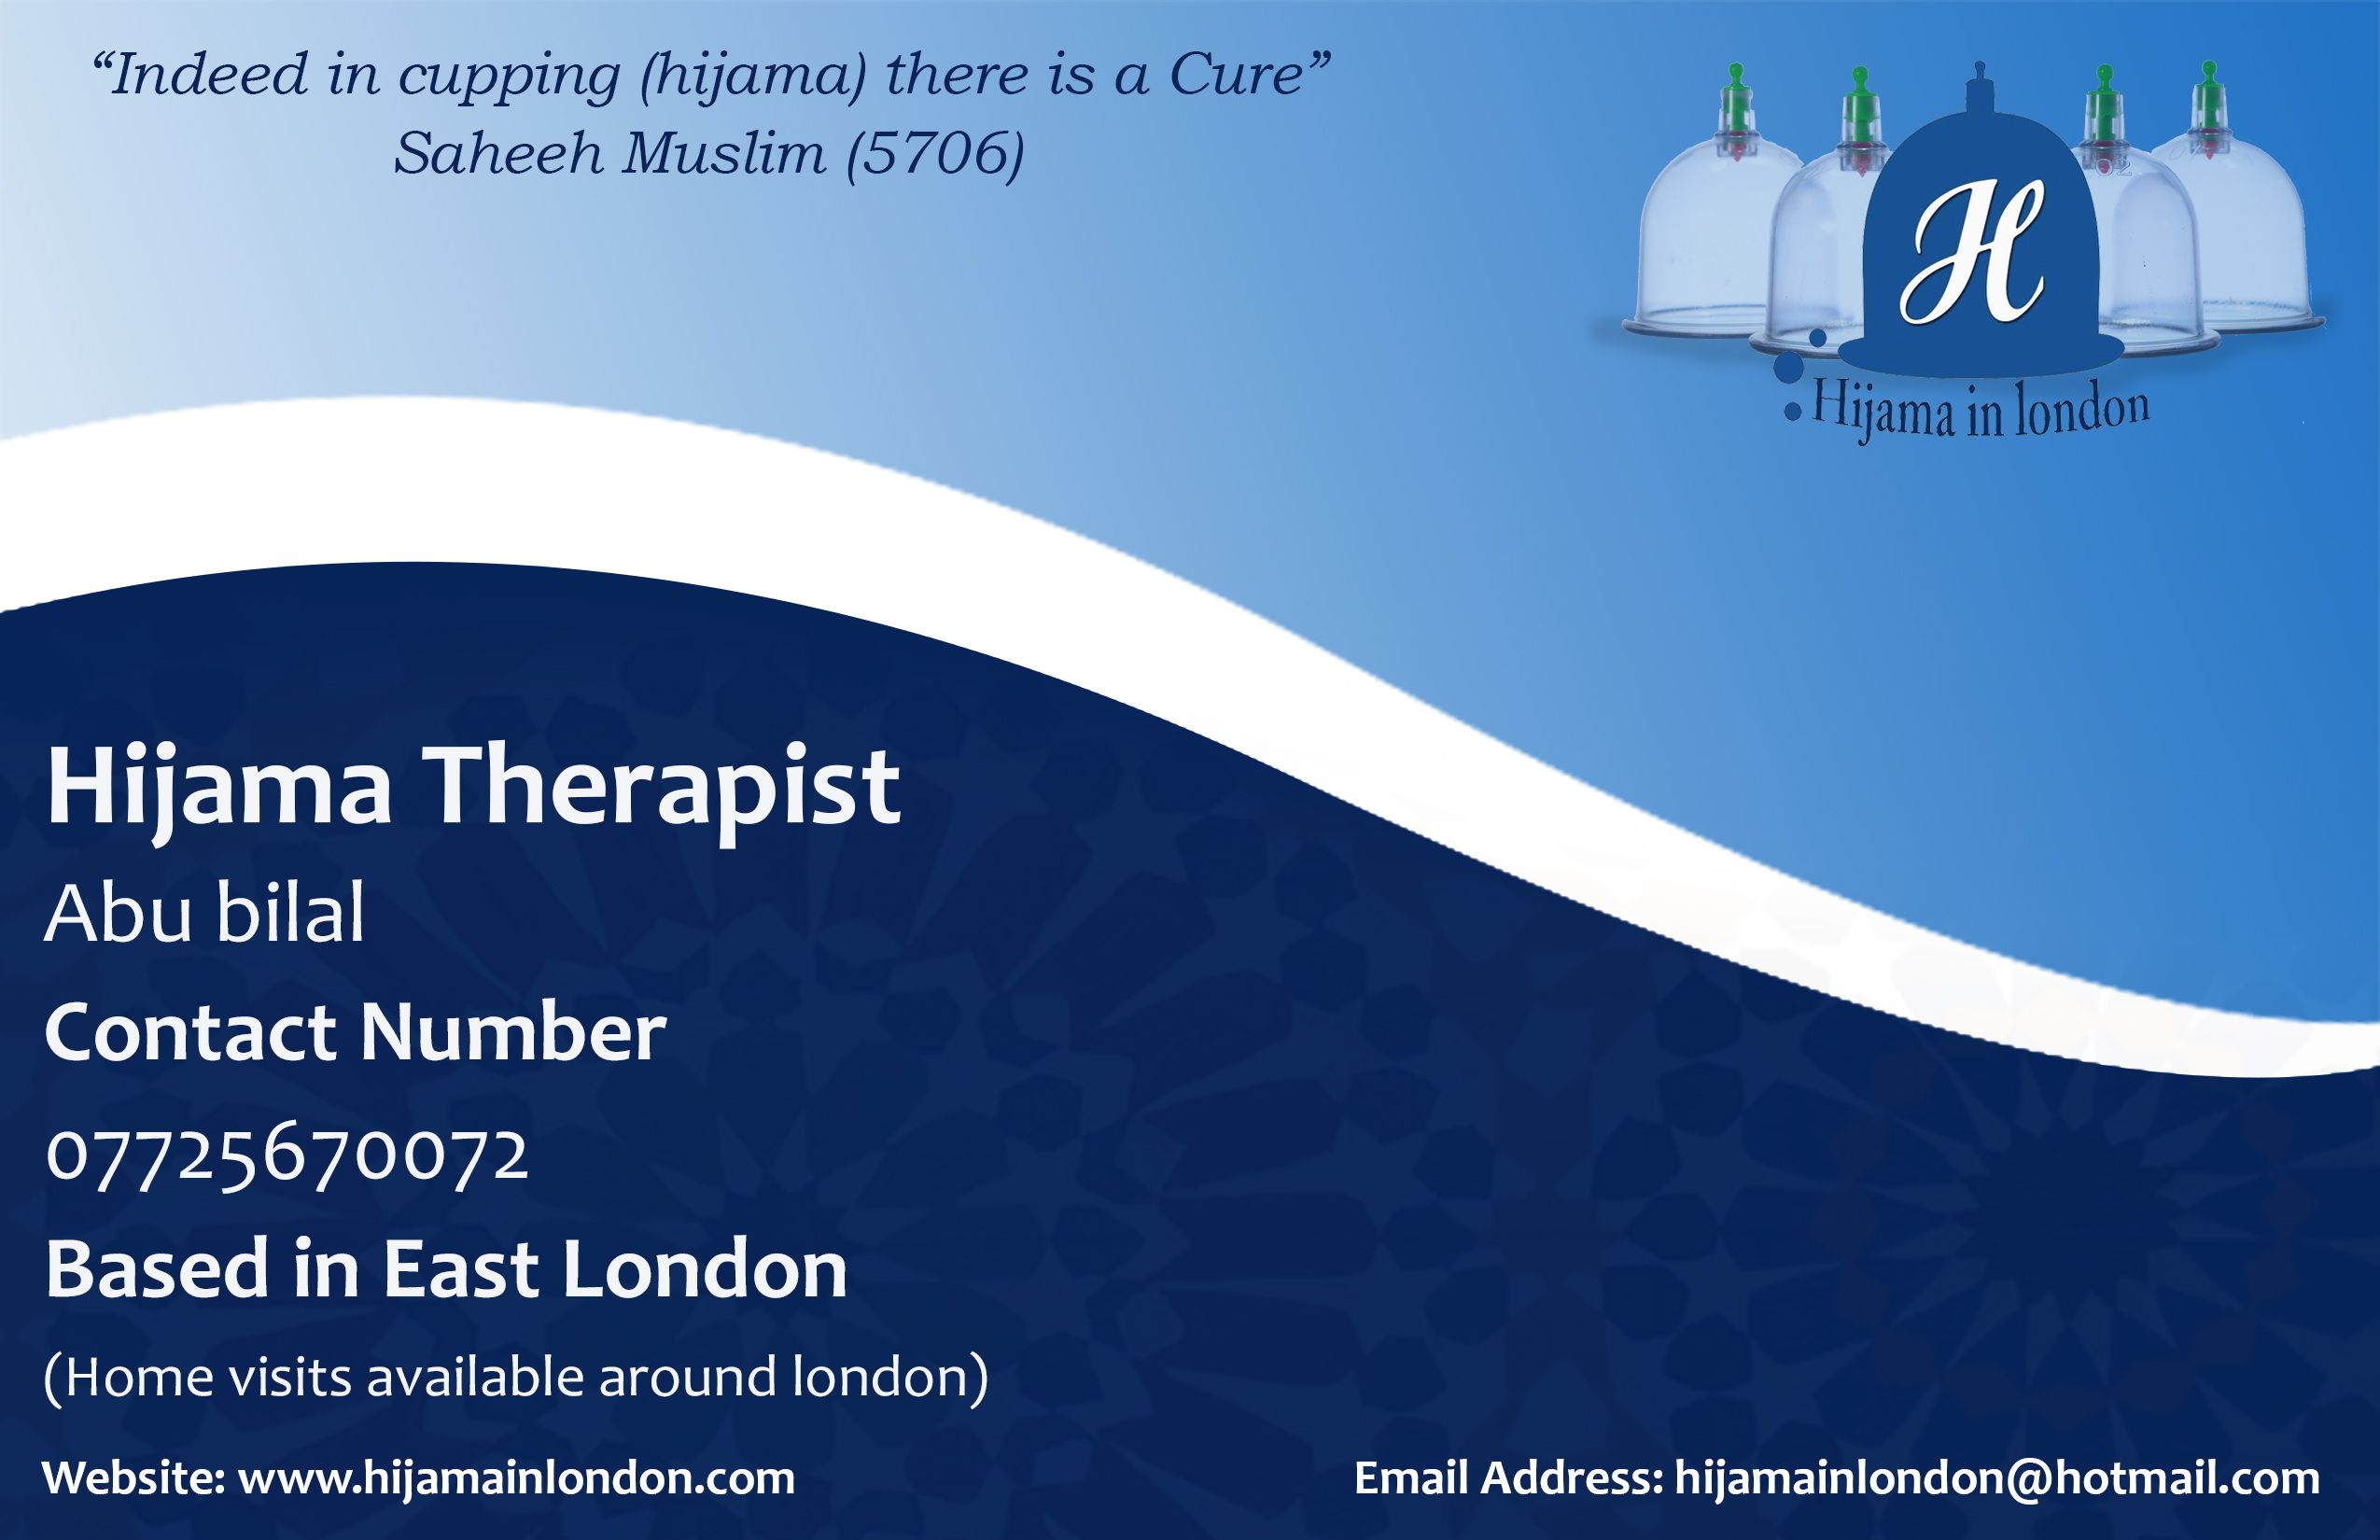 Hijama therapist cupping clinic business cards based in london cupping clinic london hijama clinic hijama in london cupping therapyhealth benefitsclinicin londonbusiness cardslipsense colourmoves Gallery